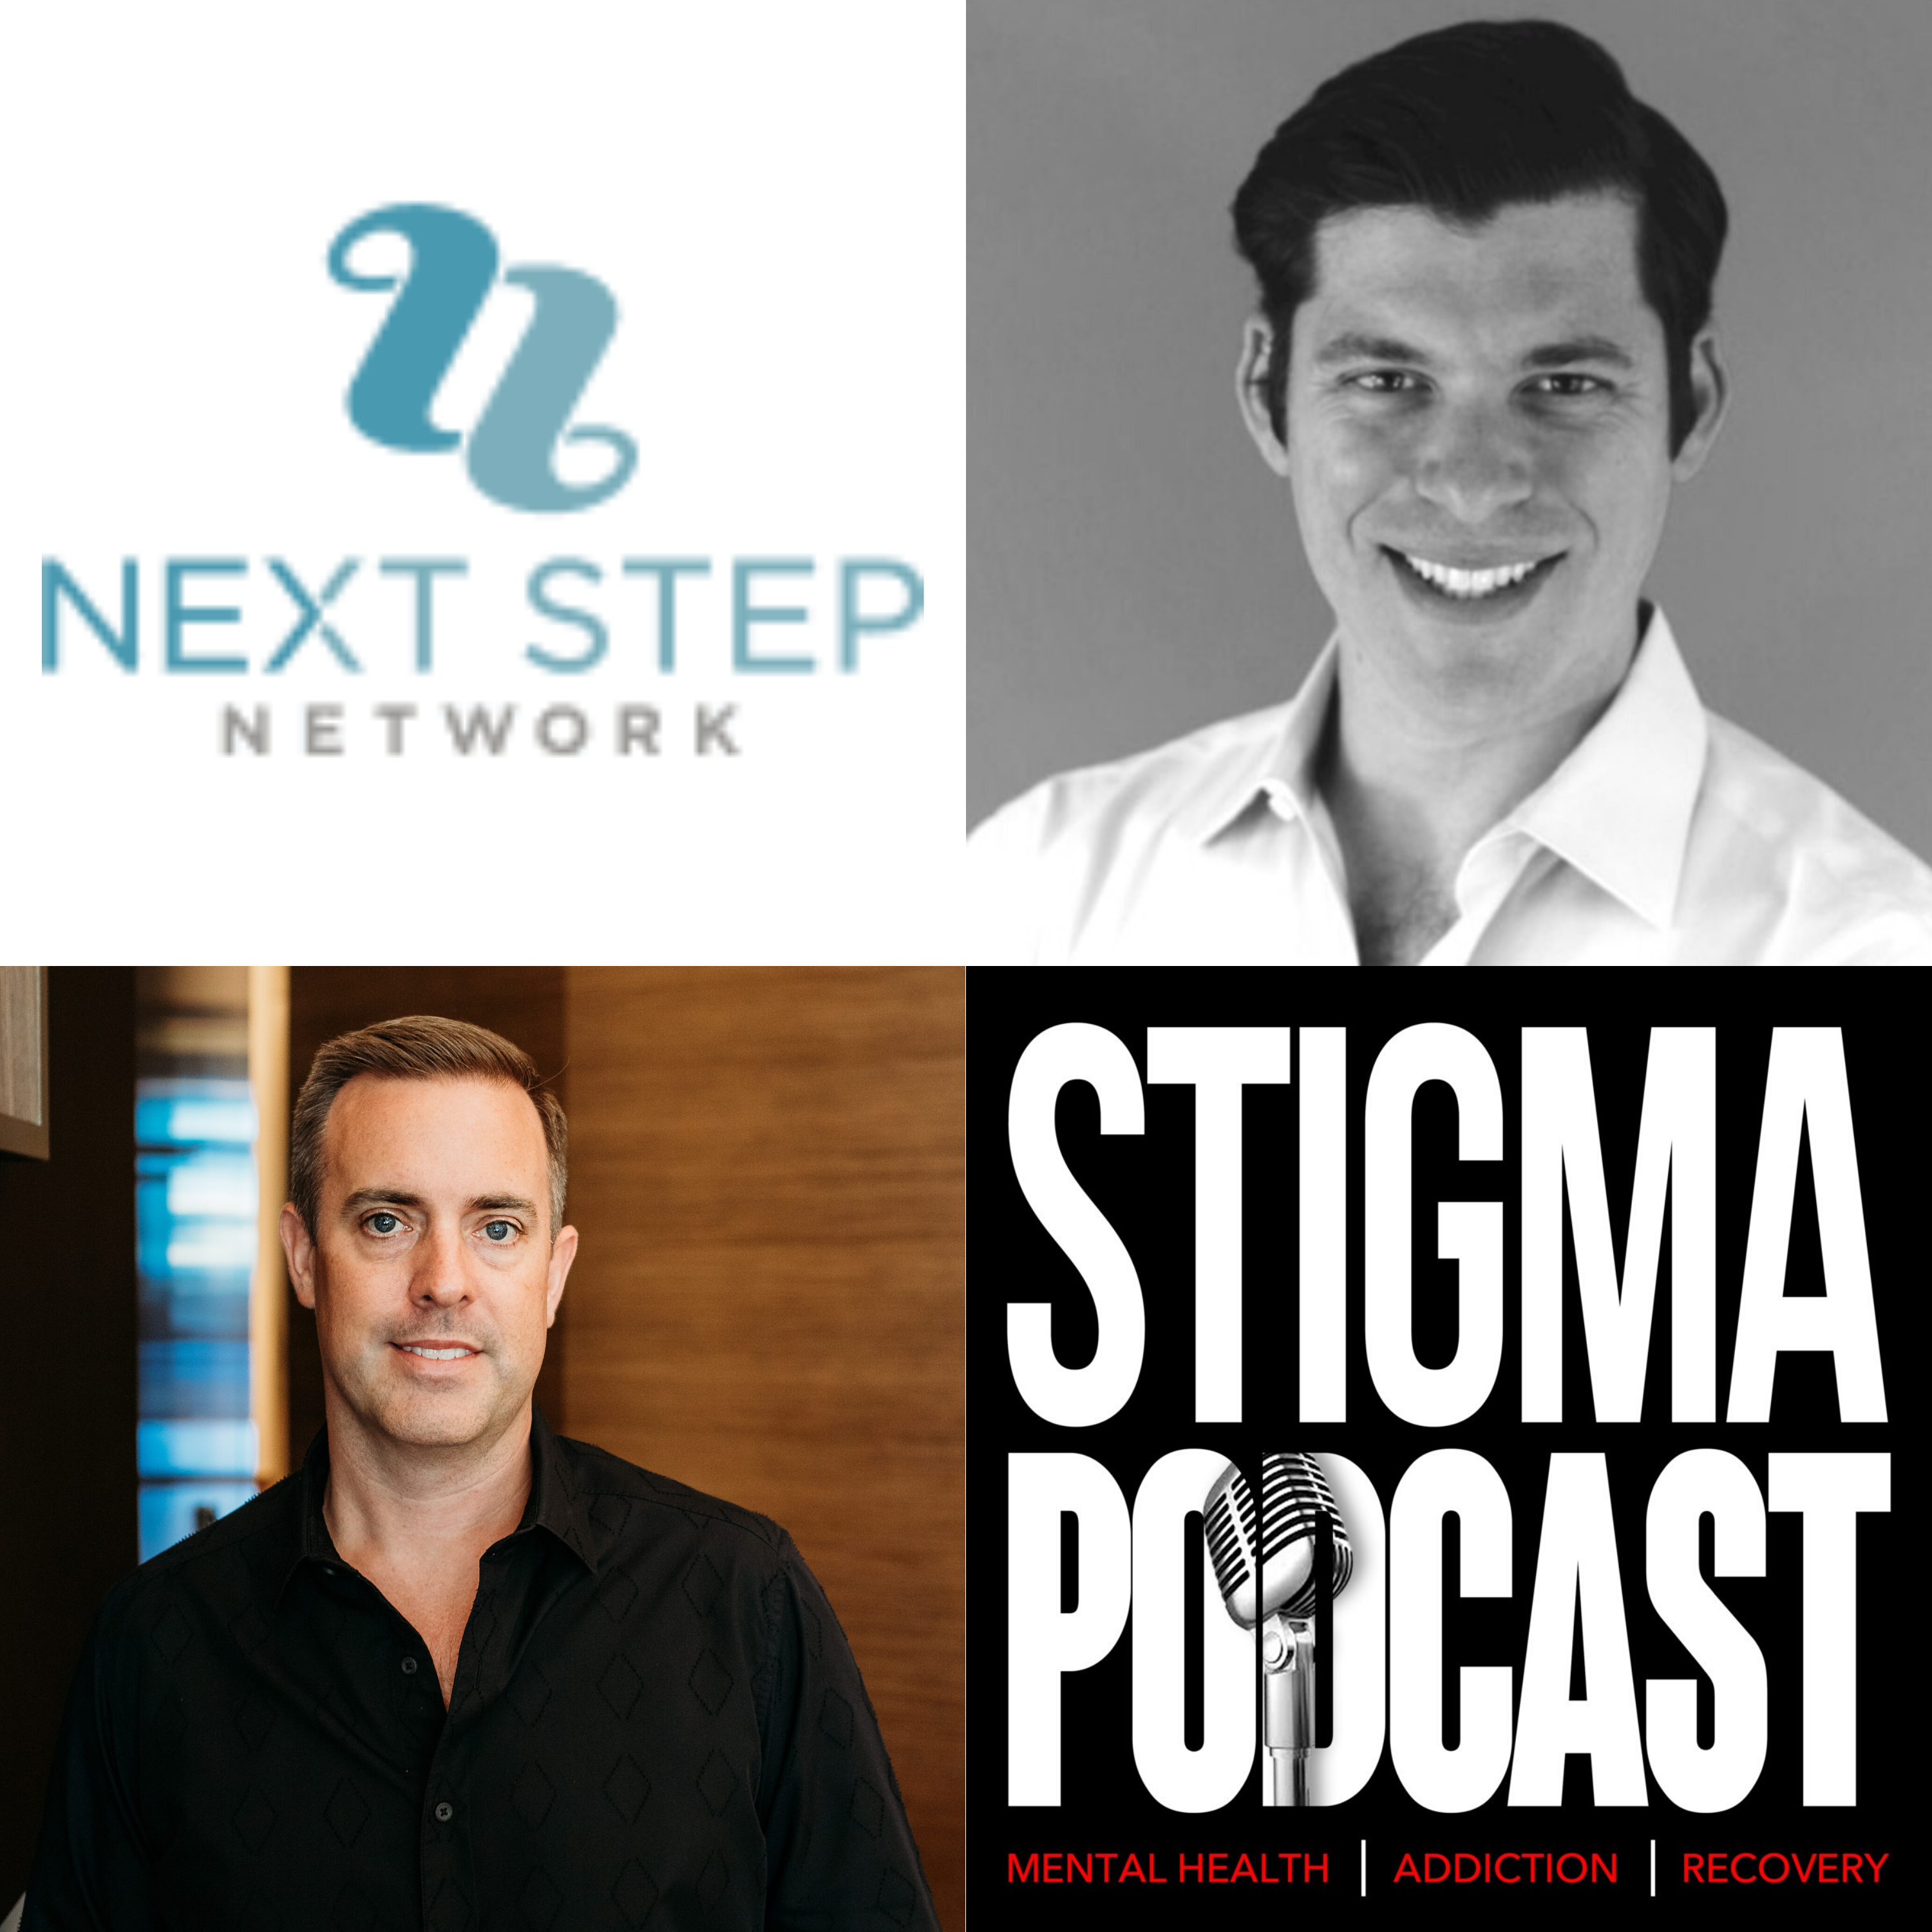 Stigma Podcast - Mental Health - #57 - Eric Dresdale - An Early Pioneer in Addiction Startups